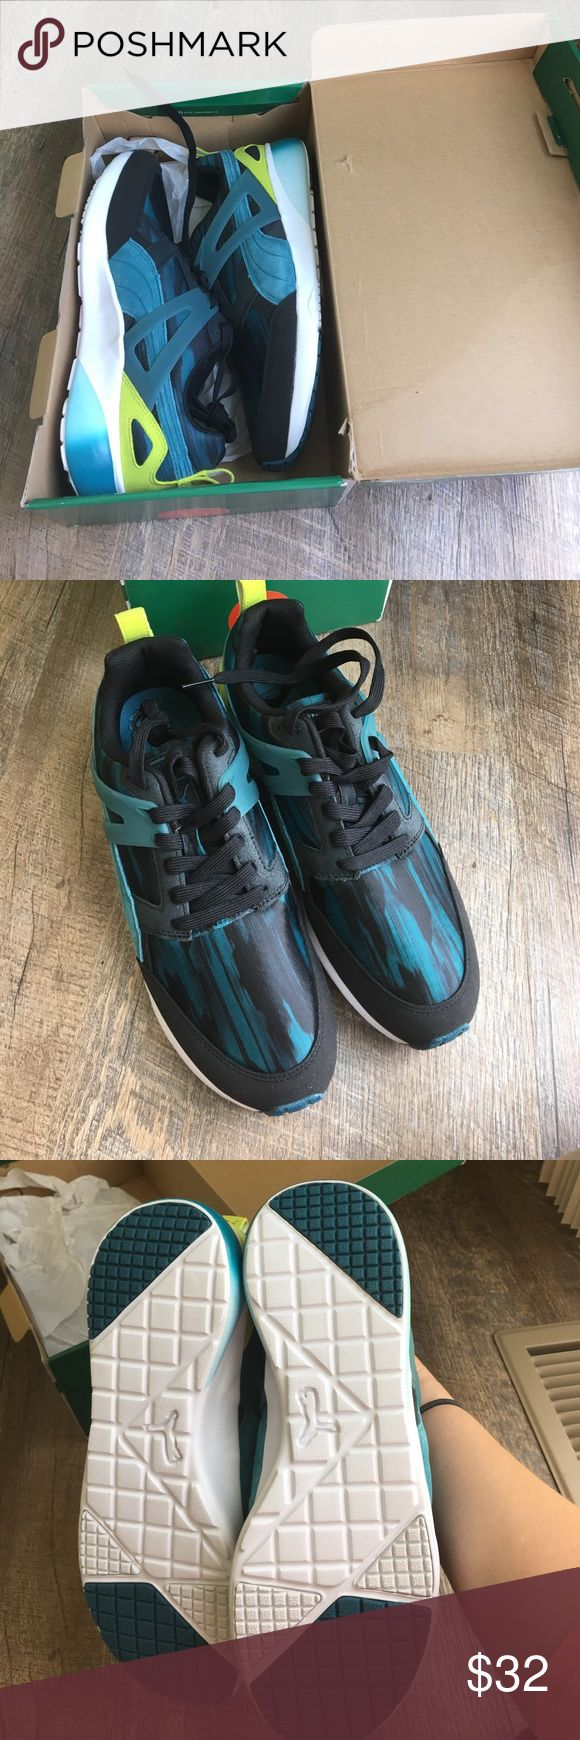 🔸🔸Brand New🔸🔸 Women's April Fast Graphic Puma Tennis Shoes. Never Worn still in the box Puma Shoes Athletic Shoes